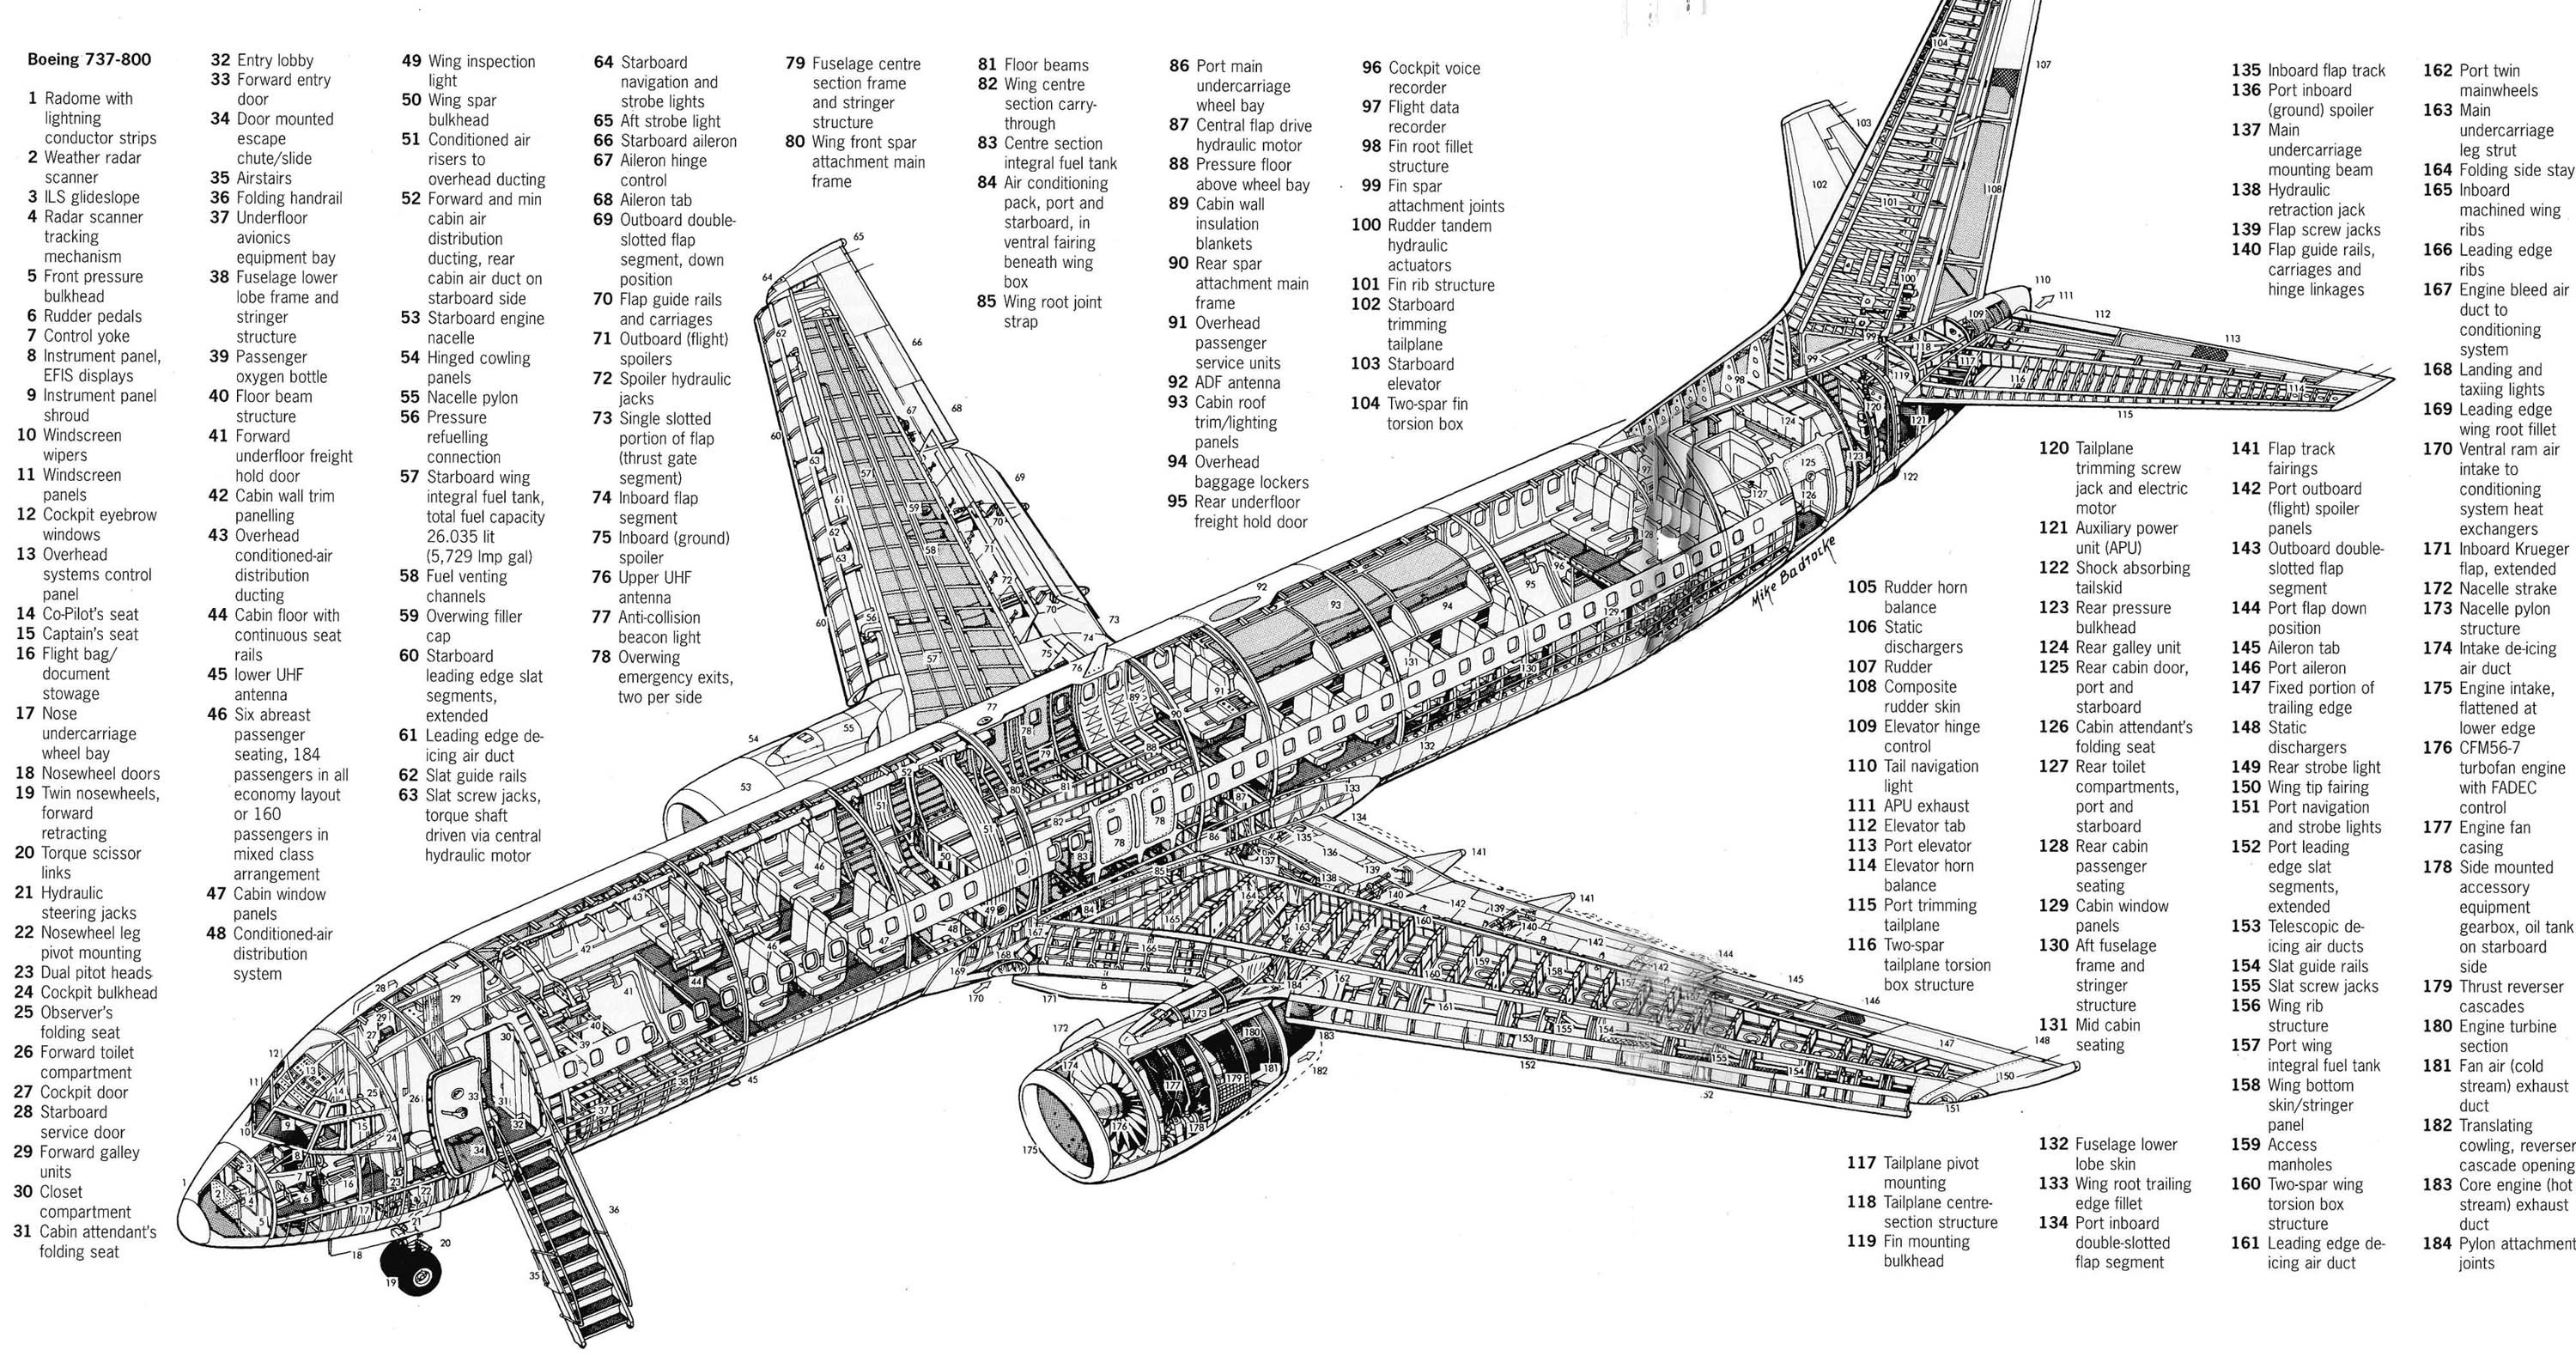 Boeing 737 Internal Structure Diagram